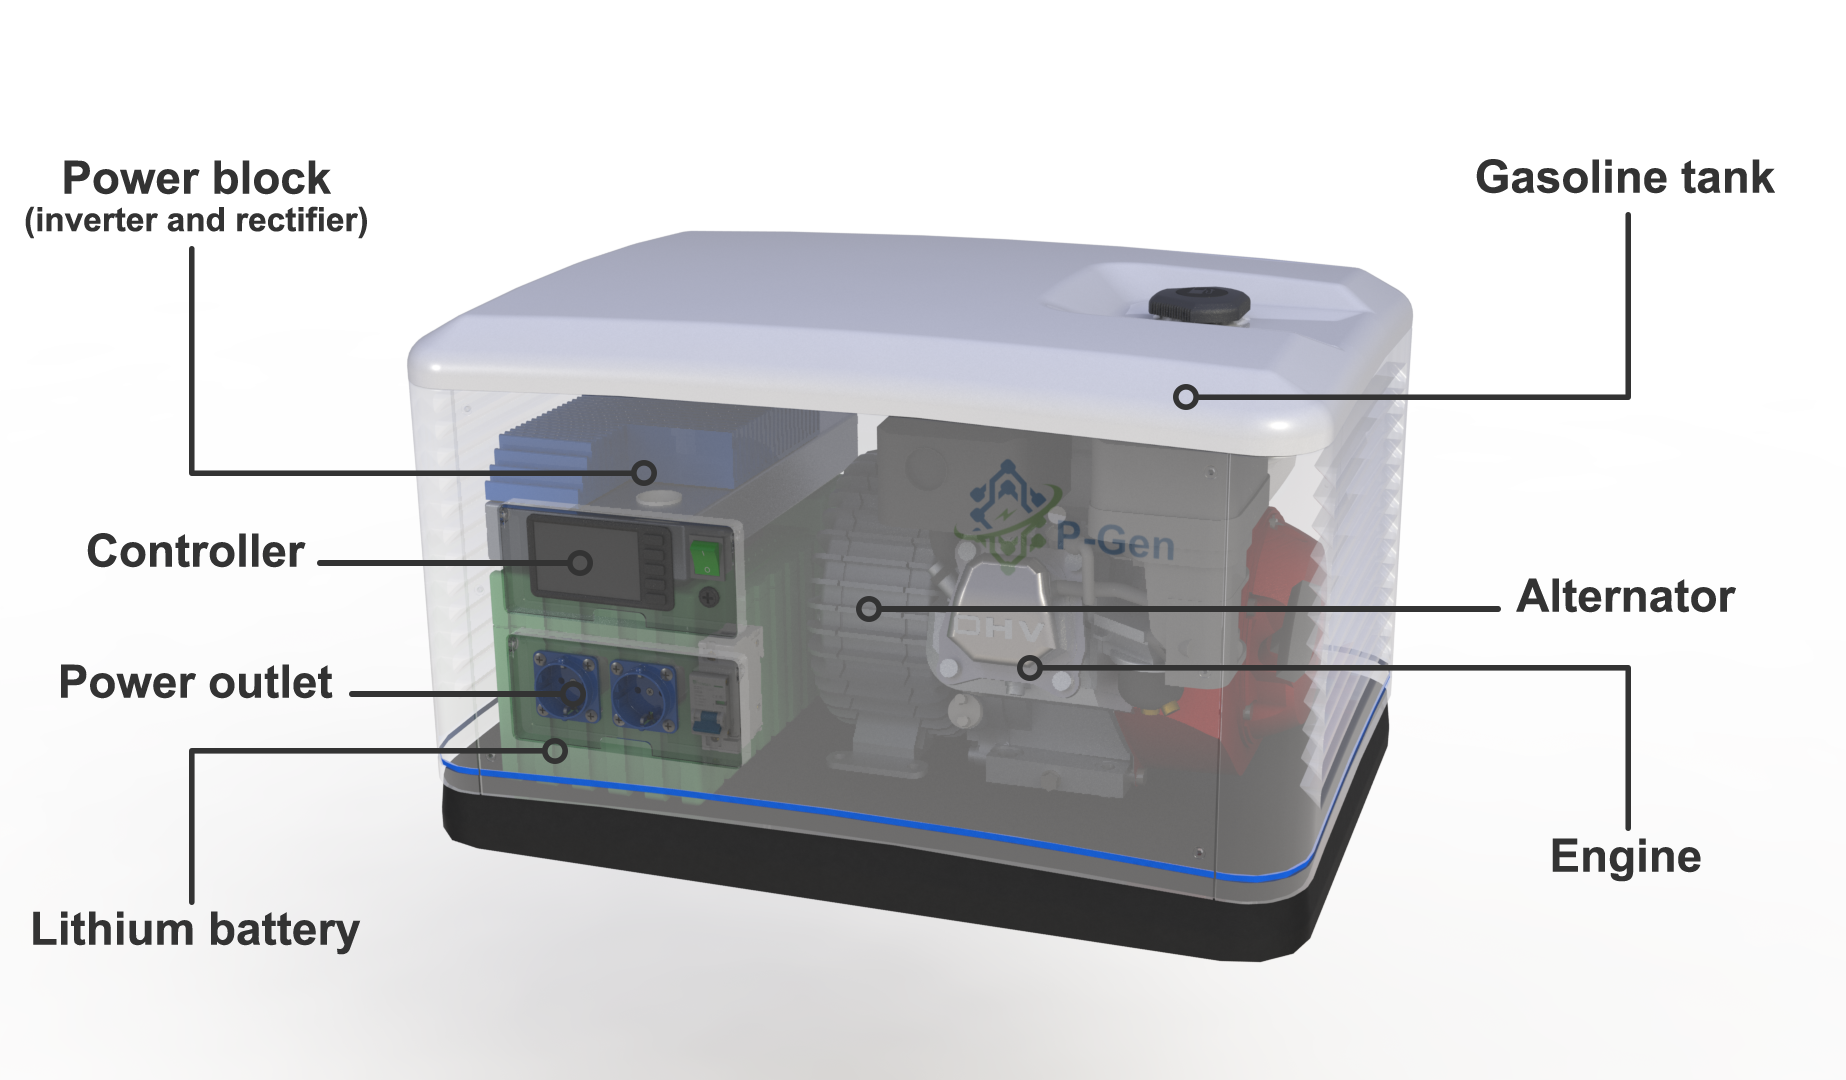 Ultra Efficient 5kw Generator With Energy Storage Indiegogo Connecting A Portable To Your Home Safely And Effectively Most Of The Electronic Components We Use Come From World Leading Manufacturers Such As Stmicroelectronics Cree Infineon Magnetics Kemet